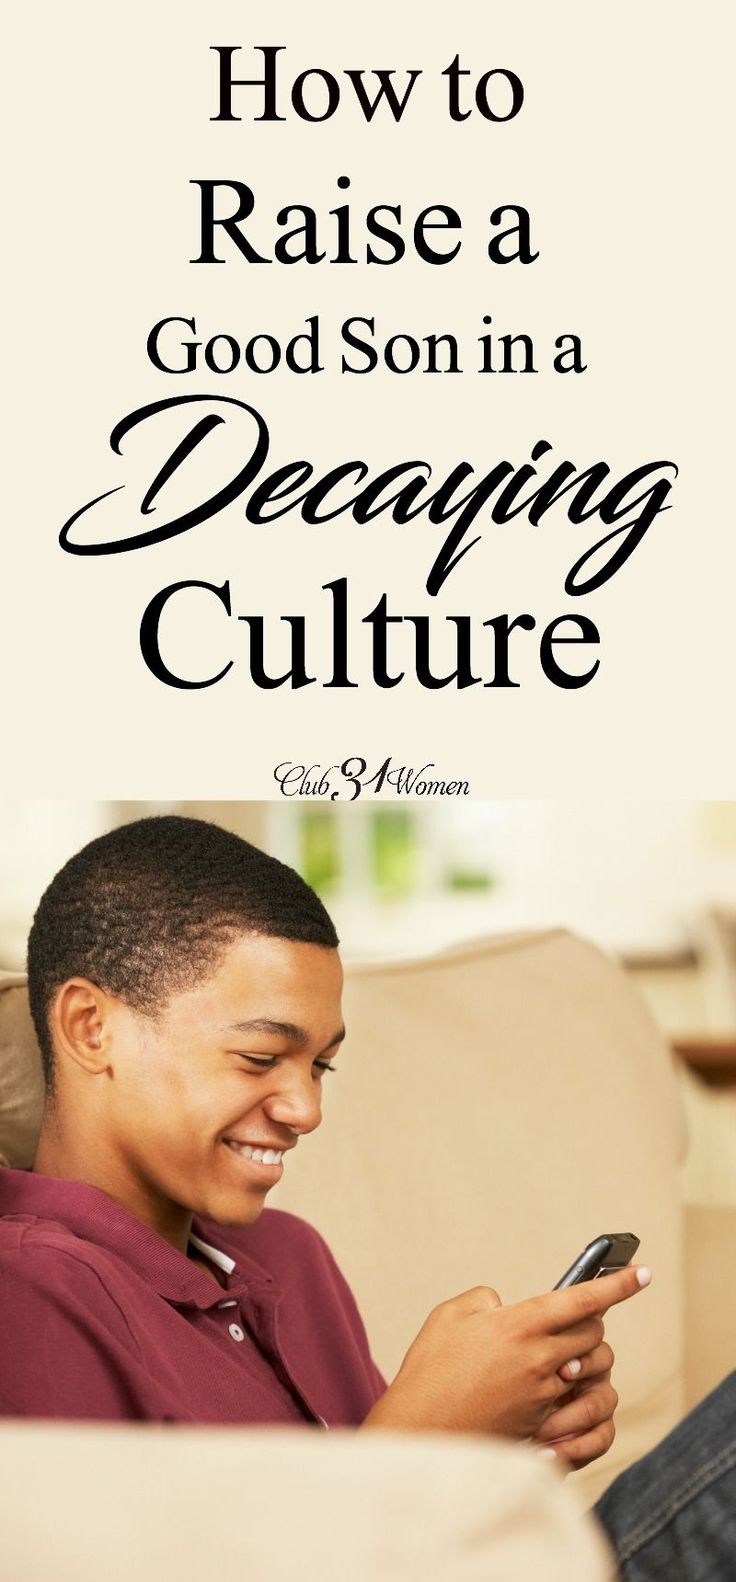 How can I run my son through this cultural gauntlet and have him turn out a fine and upstanding man? Here is such encouraging wisdom on raising a good son! via @Club31Women